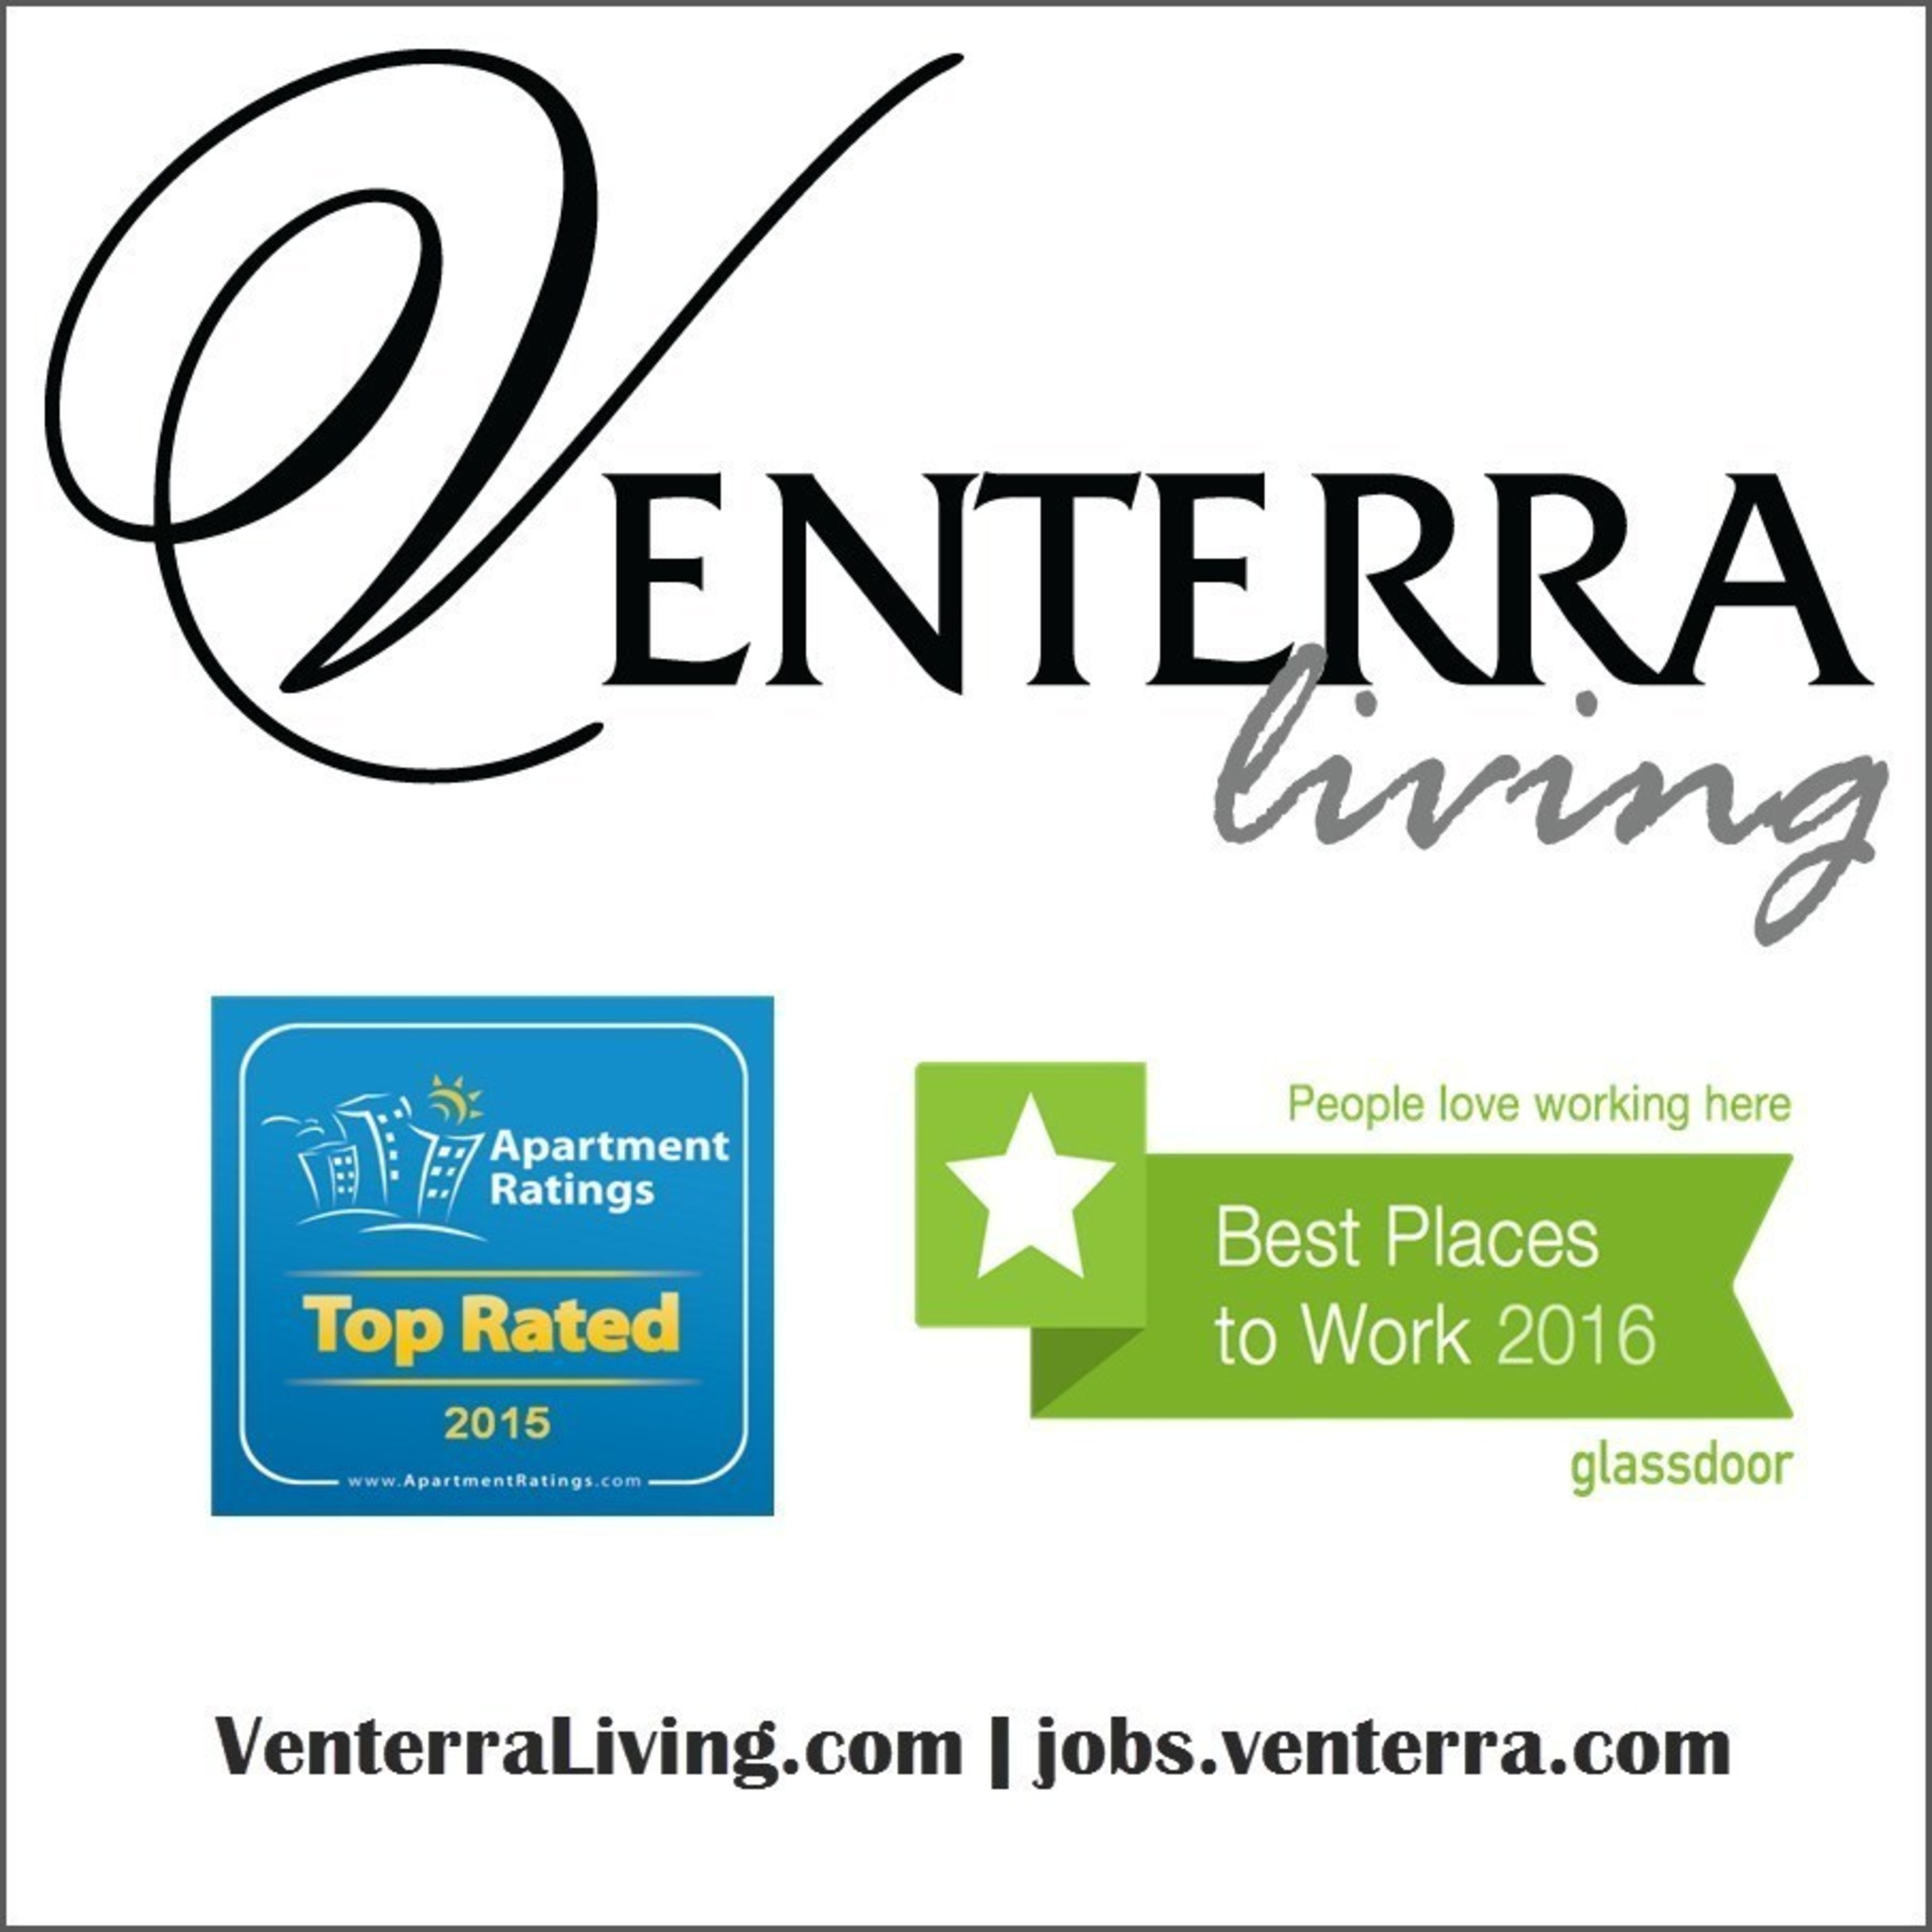 Venterra Realty was awarded Top Rated on ApartmentRatings.com for the 4th year in a row! In 2015, 95% of Venterra Realty's apartment communities were named Top Rated.